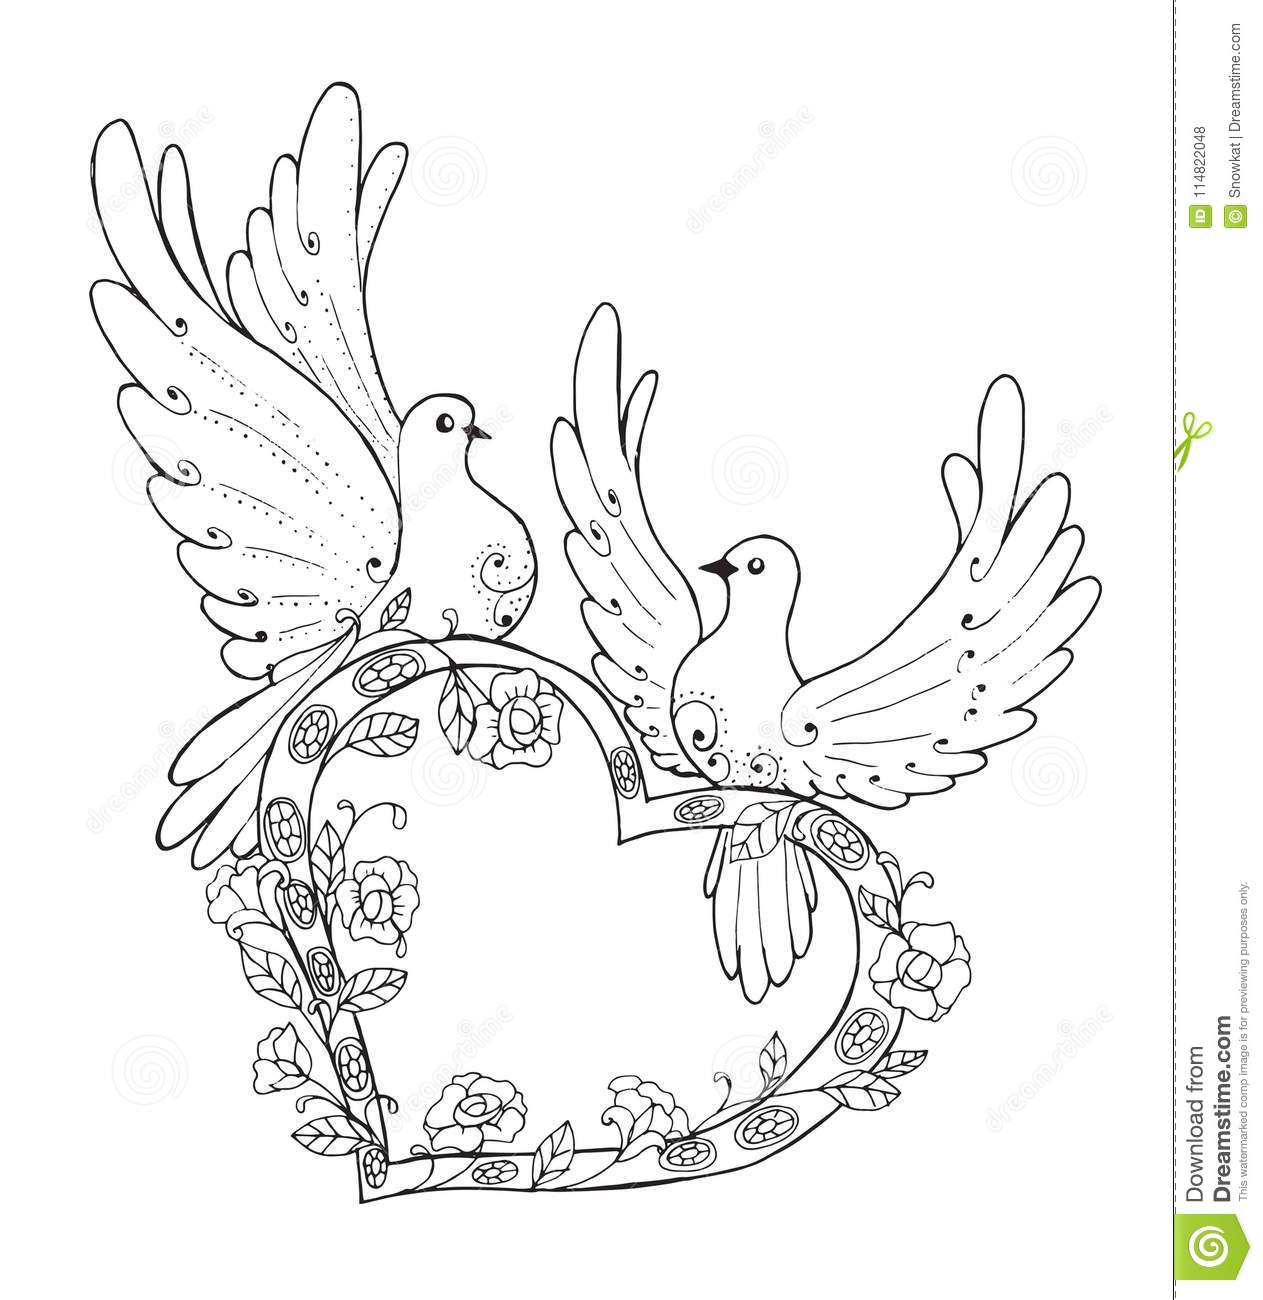 Couple of lovebirds outline drawing for coloring coloring book for kids and adults stylized birds and heart beautiful pattern for printing on postcards